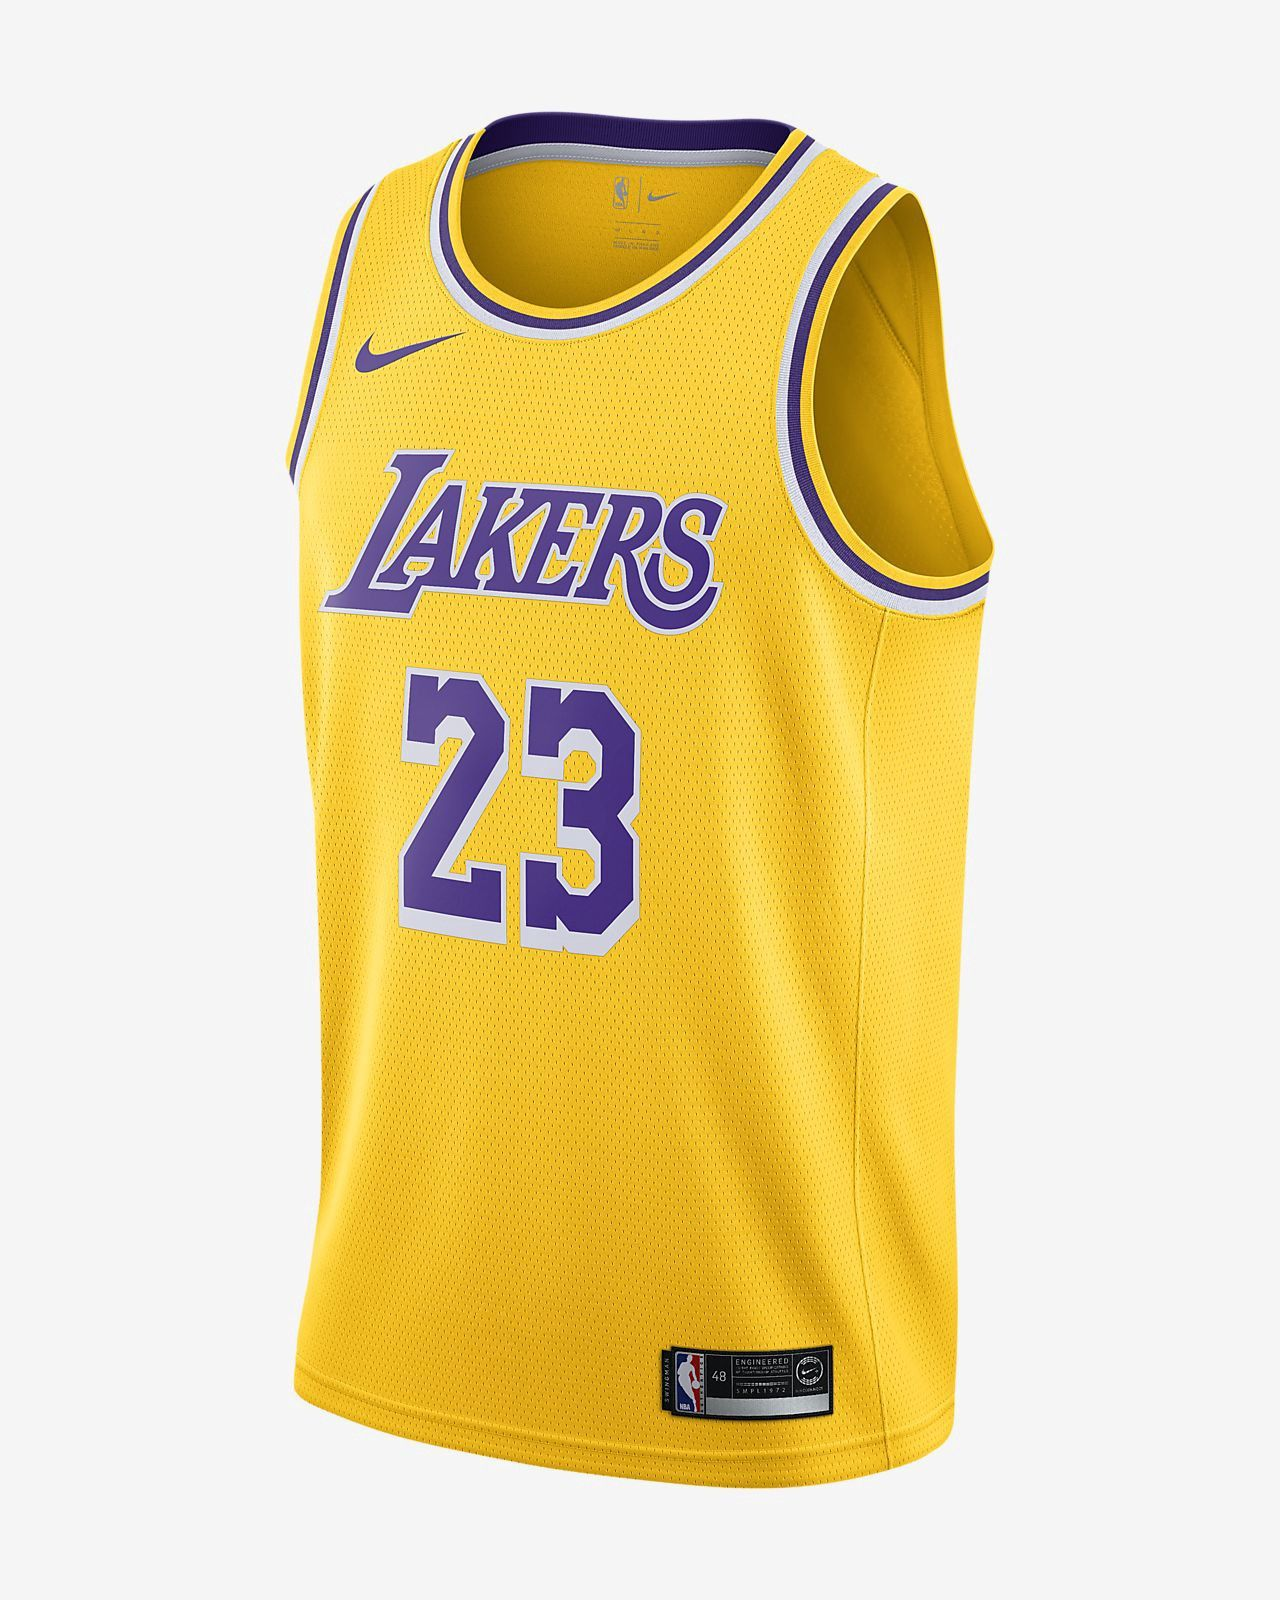 5f90cca447a Nike Lebron James Icon Edition Swingman Jersey (Los Angeles Lakers) Men s  Nba Connected - 2Xl (56)